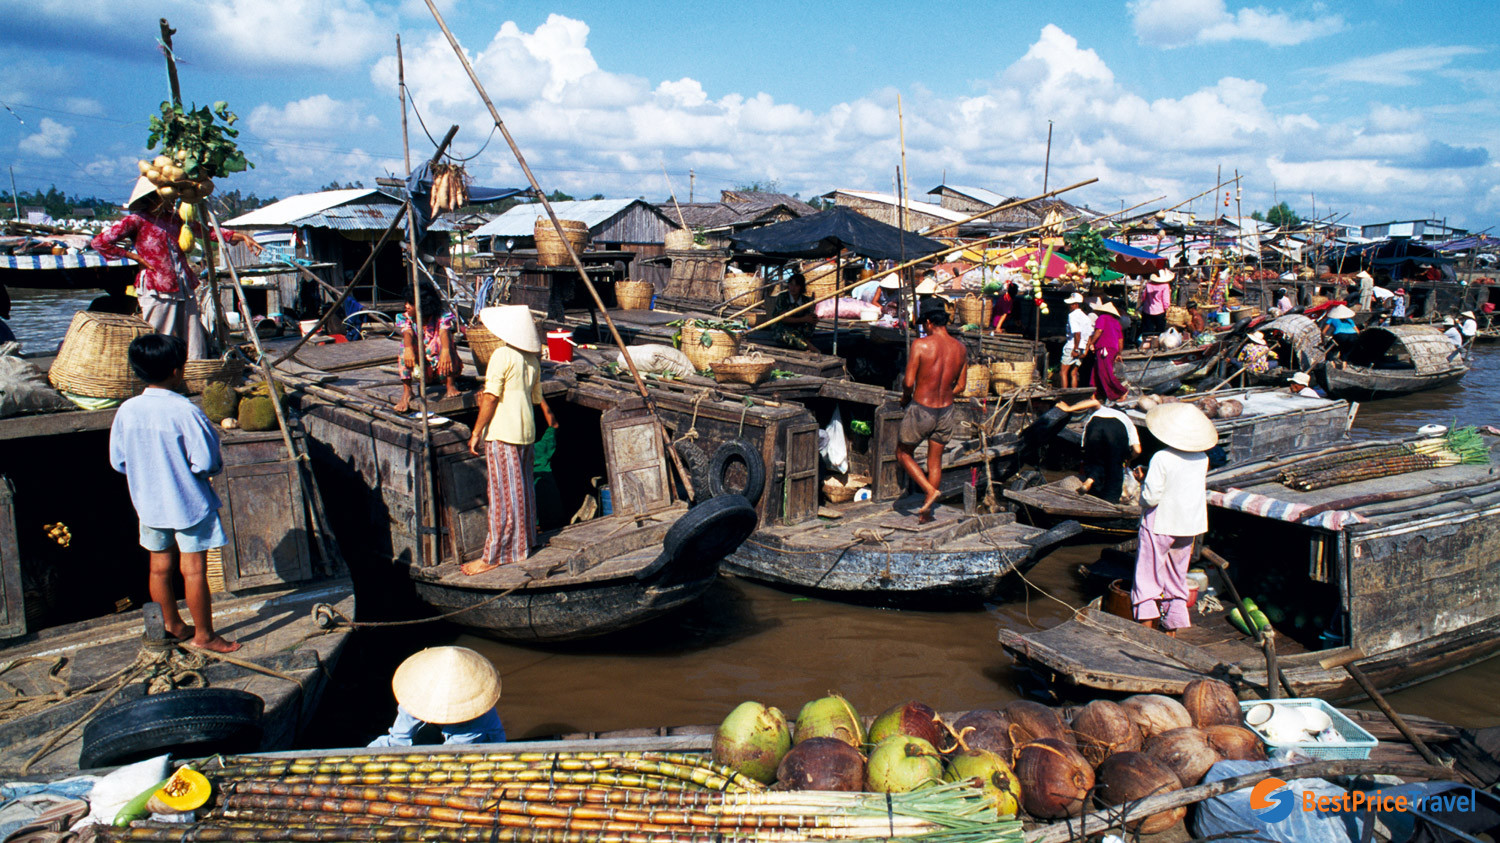 Cai Rang is the most famous floating market in Vietnam